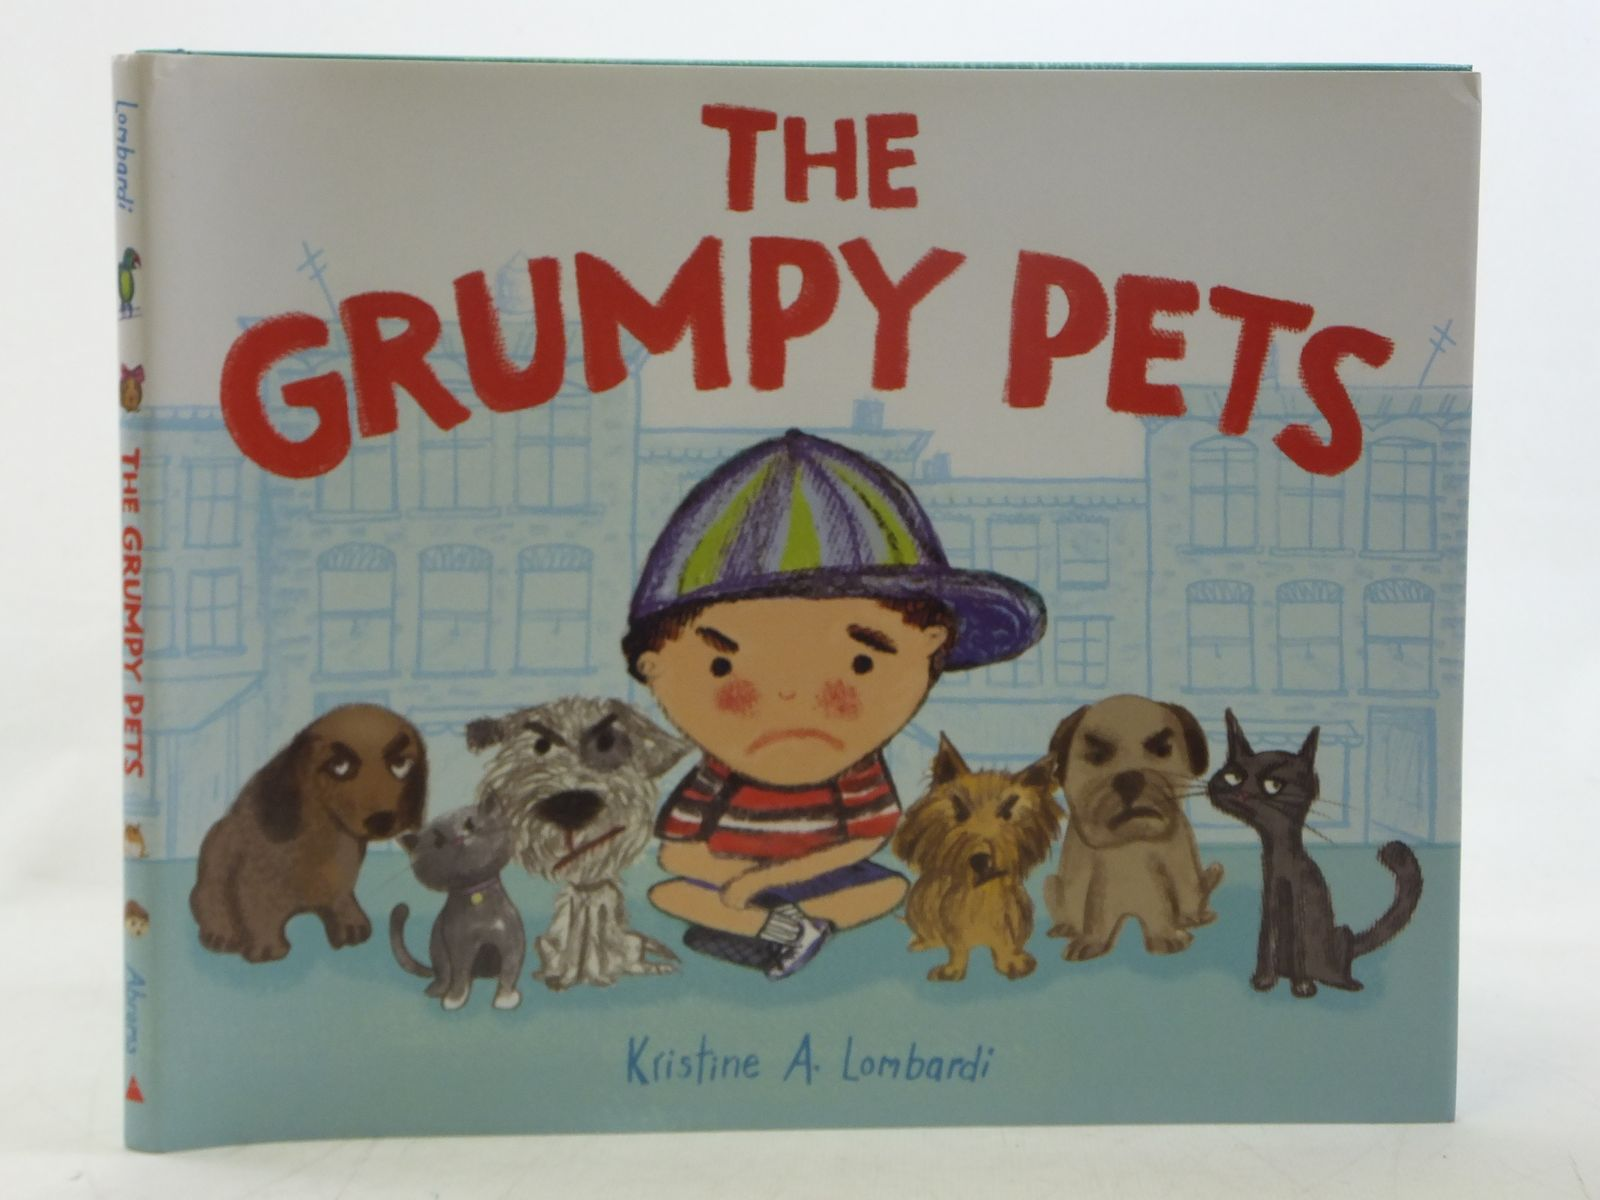 Photo of THE GRUMPY PETS written by Lombardi, Kristine A. illustrated by Lombardi, Kristine A. published by Abrams Books For Young Readers (STOCK CODE: 2117900)  for sale by Stella & Rose's Books